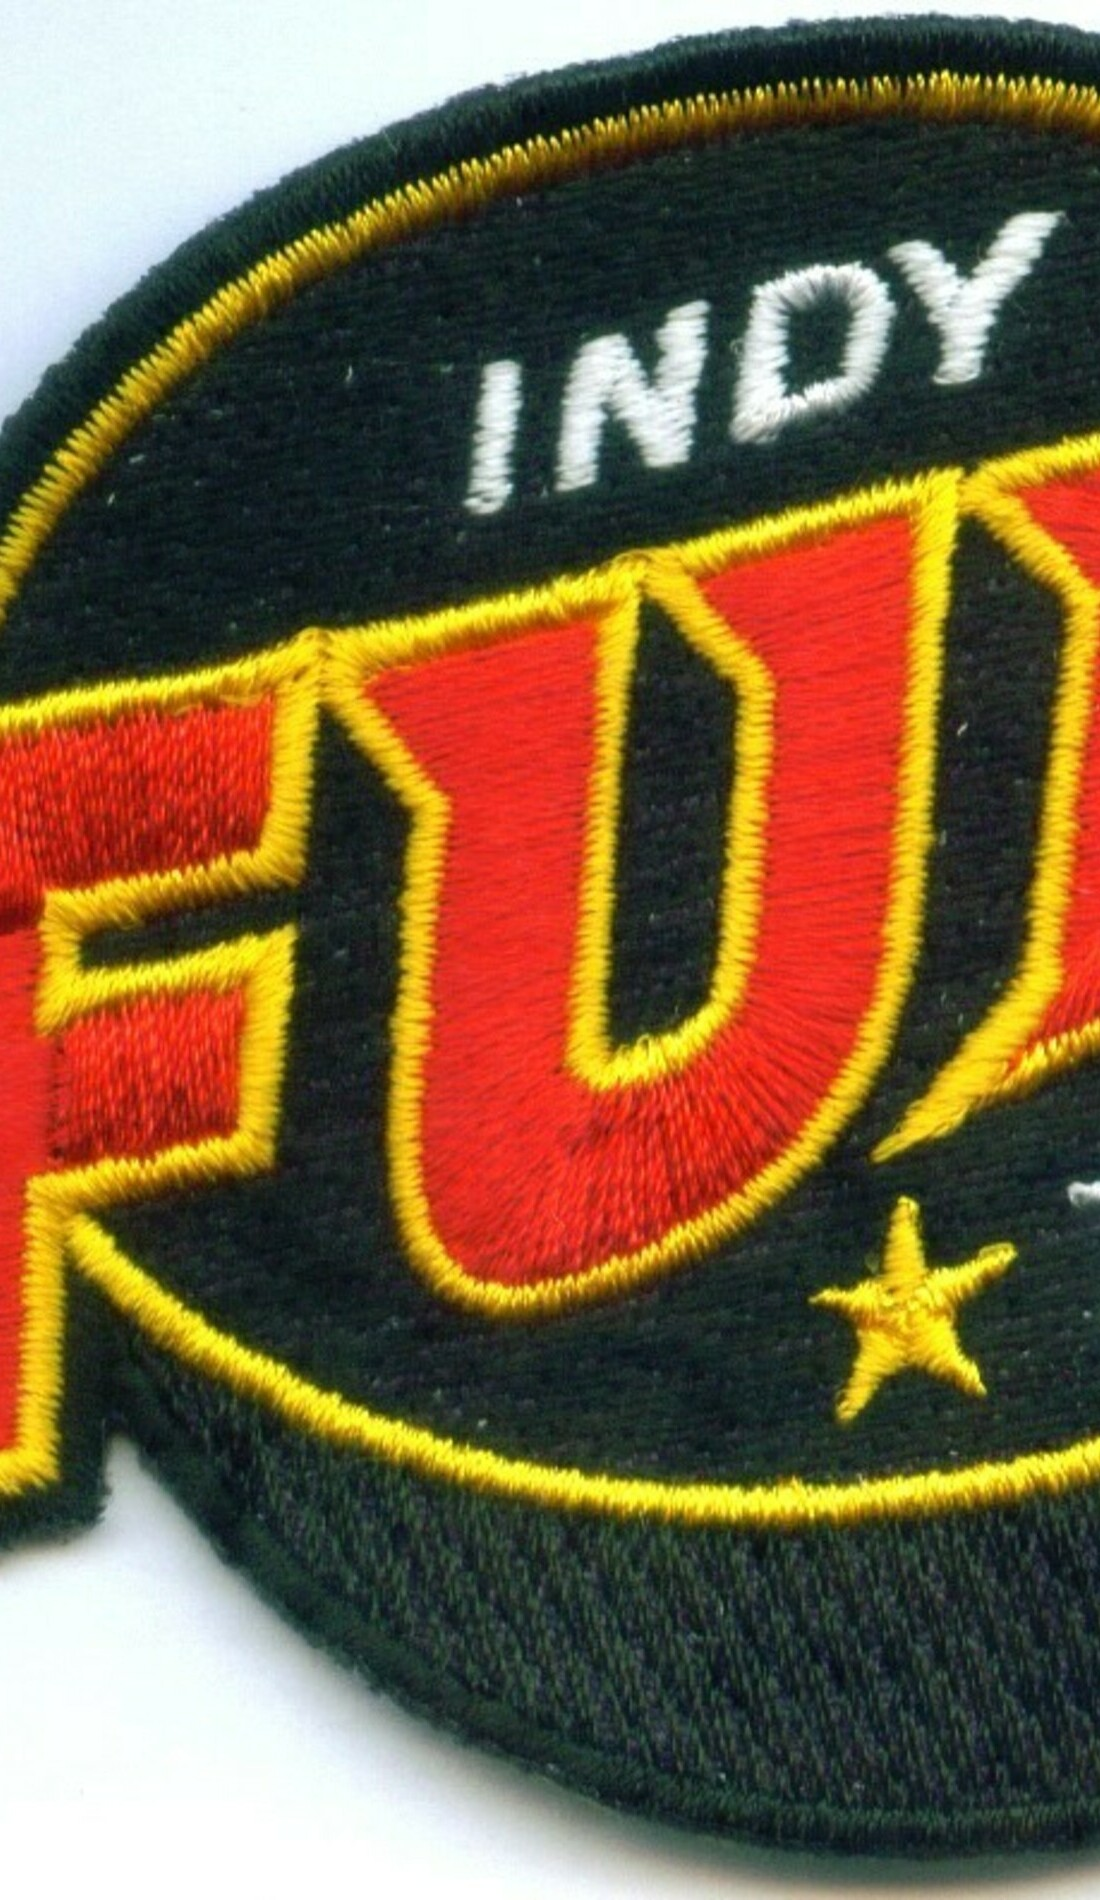 A Indy Fuel live event